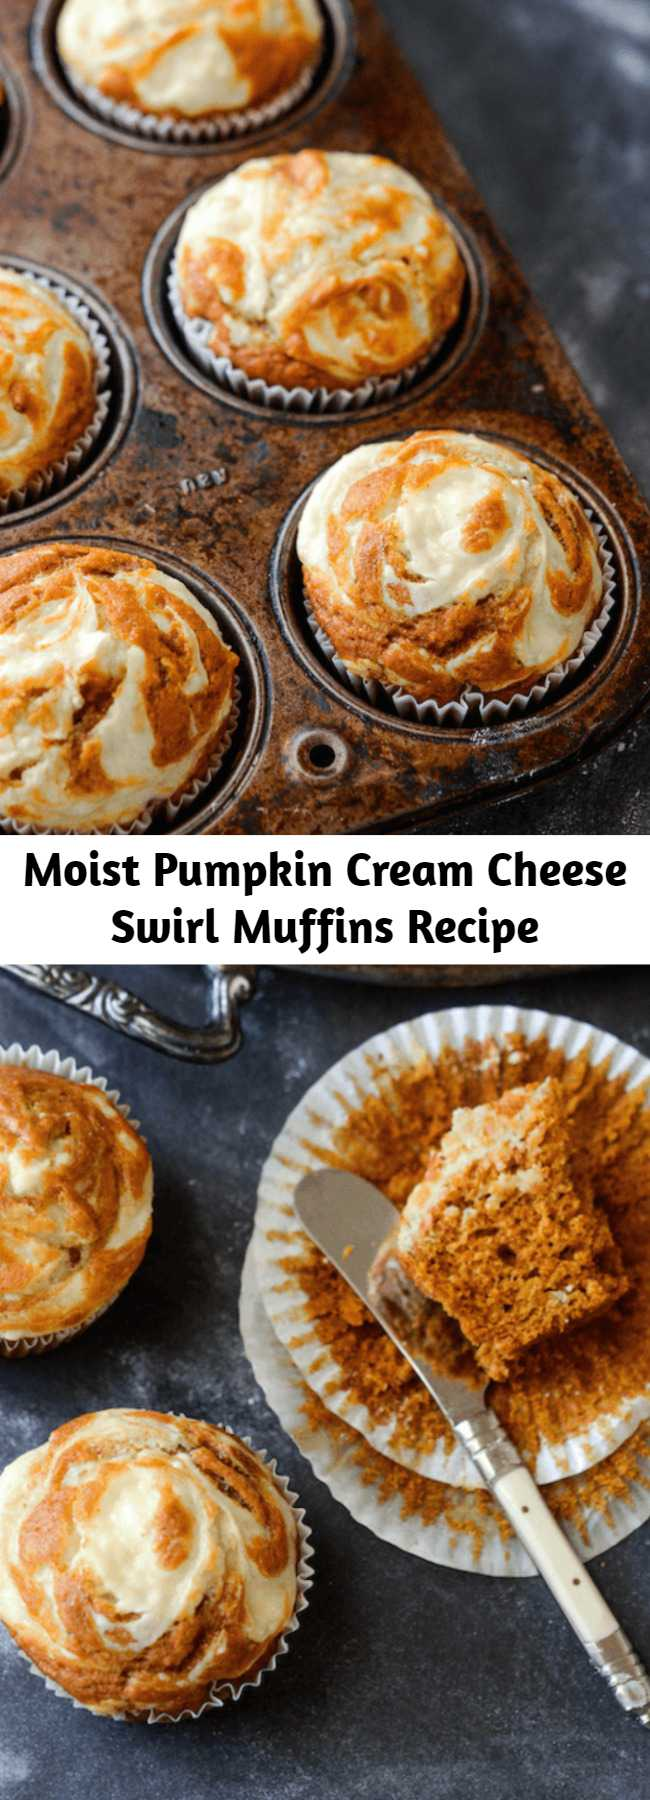 Moist Pumpkin Cream Cheese Swirl Muffins Recipe - Moist spiced pumpkin muffins are topped with sweet cream cheese that melts into them as they bake and only take 30 minutes!